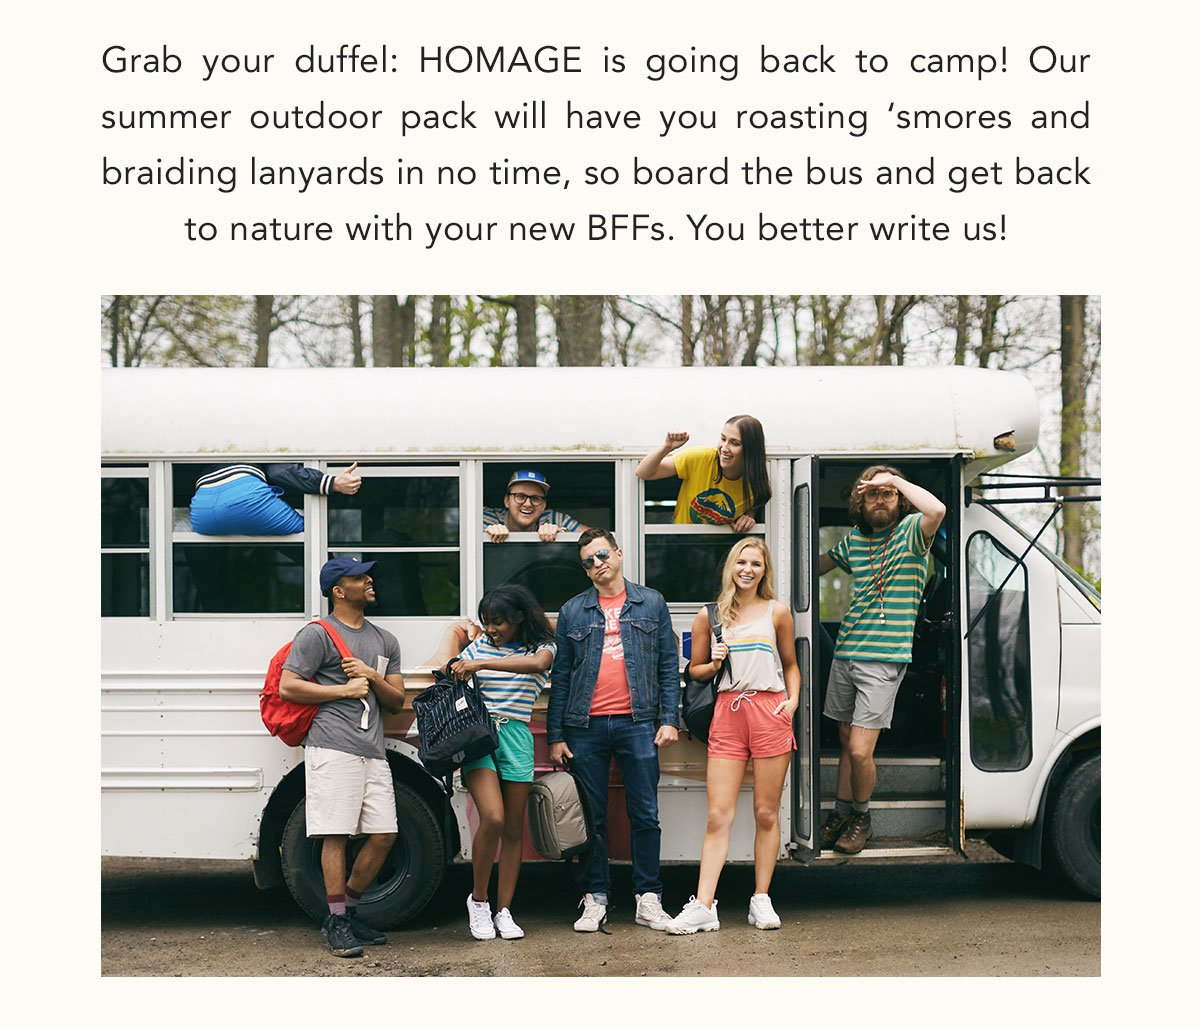 Homage: Back to camp! 🏕️ NEW HOMAGE Summer Outdoor arrivals! | Milled